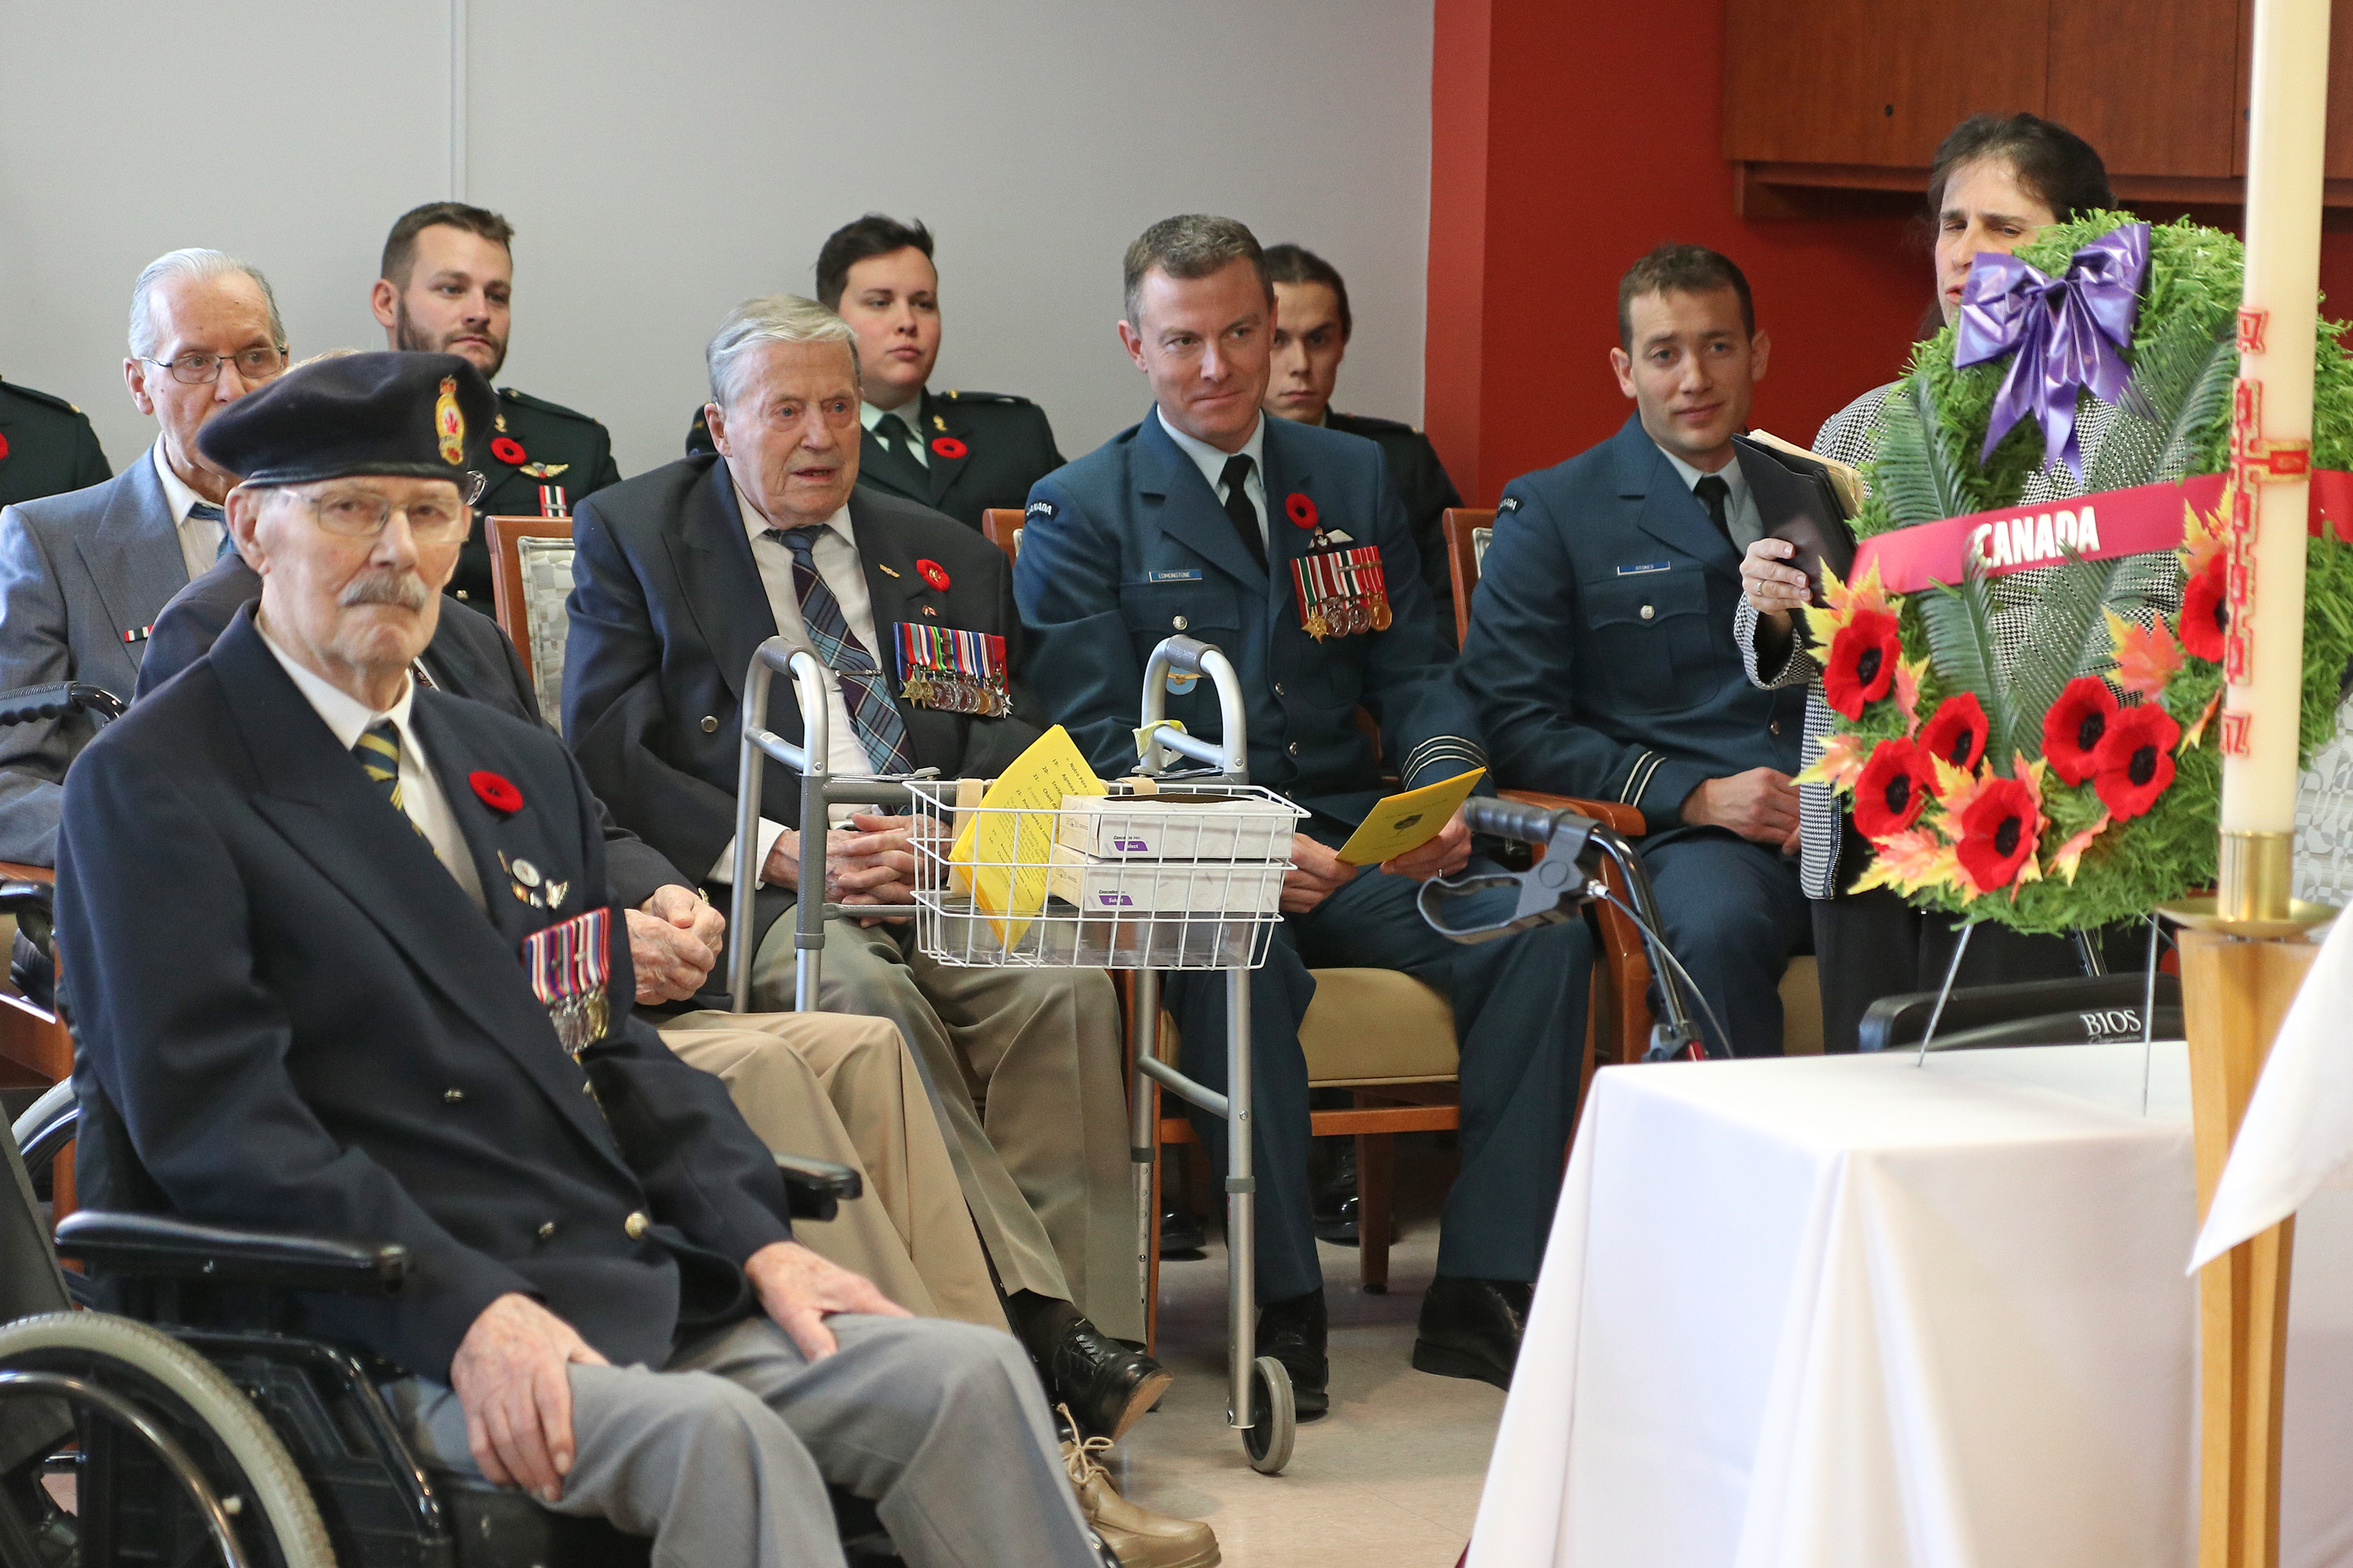 From left, Flight Sergeant (retired) Jean Cauchy, Lieutenant-Colonel Jody Edmonstone and Captain Matt Stokes listen attentively during a 2019 Remembrance Day ceremony at Maison Paul Triquet where Flight Sergeant Cauchy lives in Quebec City. PHOTO: Submitted